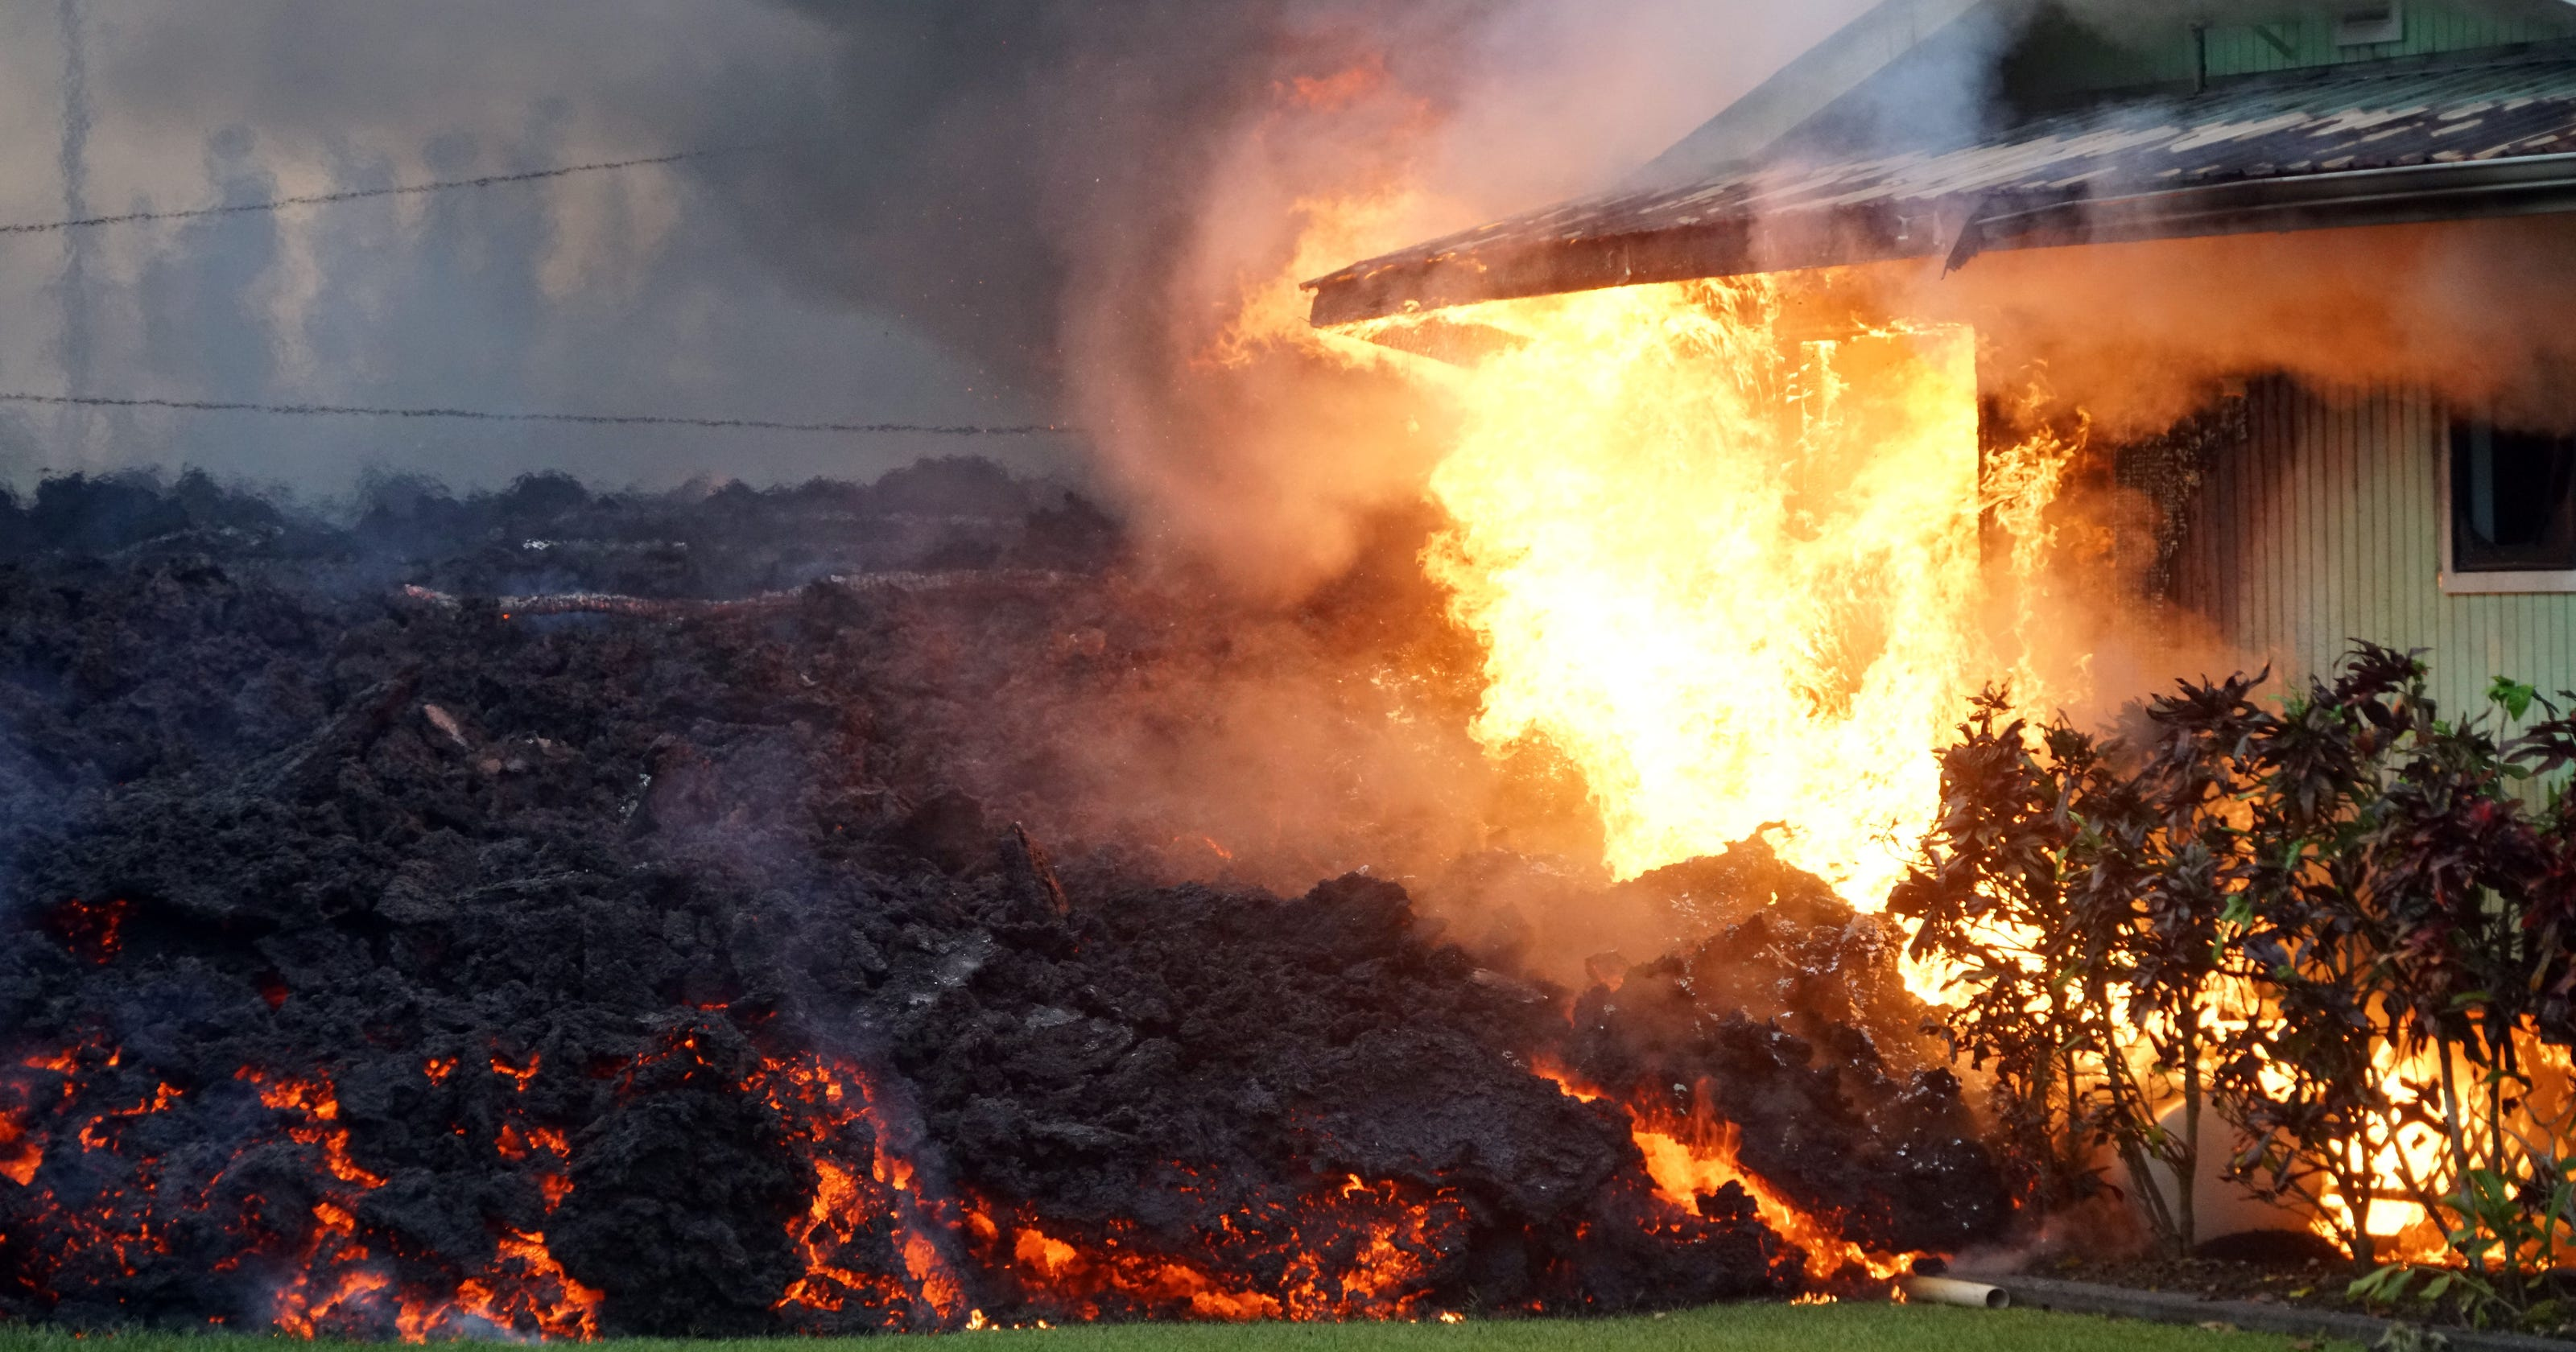 Hawaii volcano: You can't stop the lava flow with water, bombs, walls